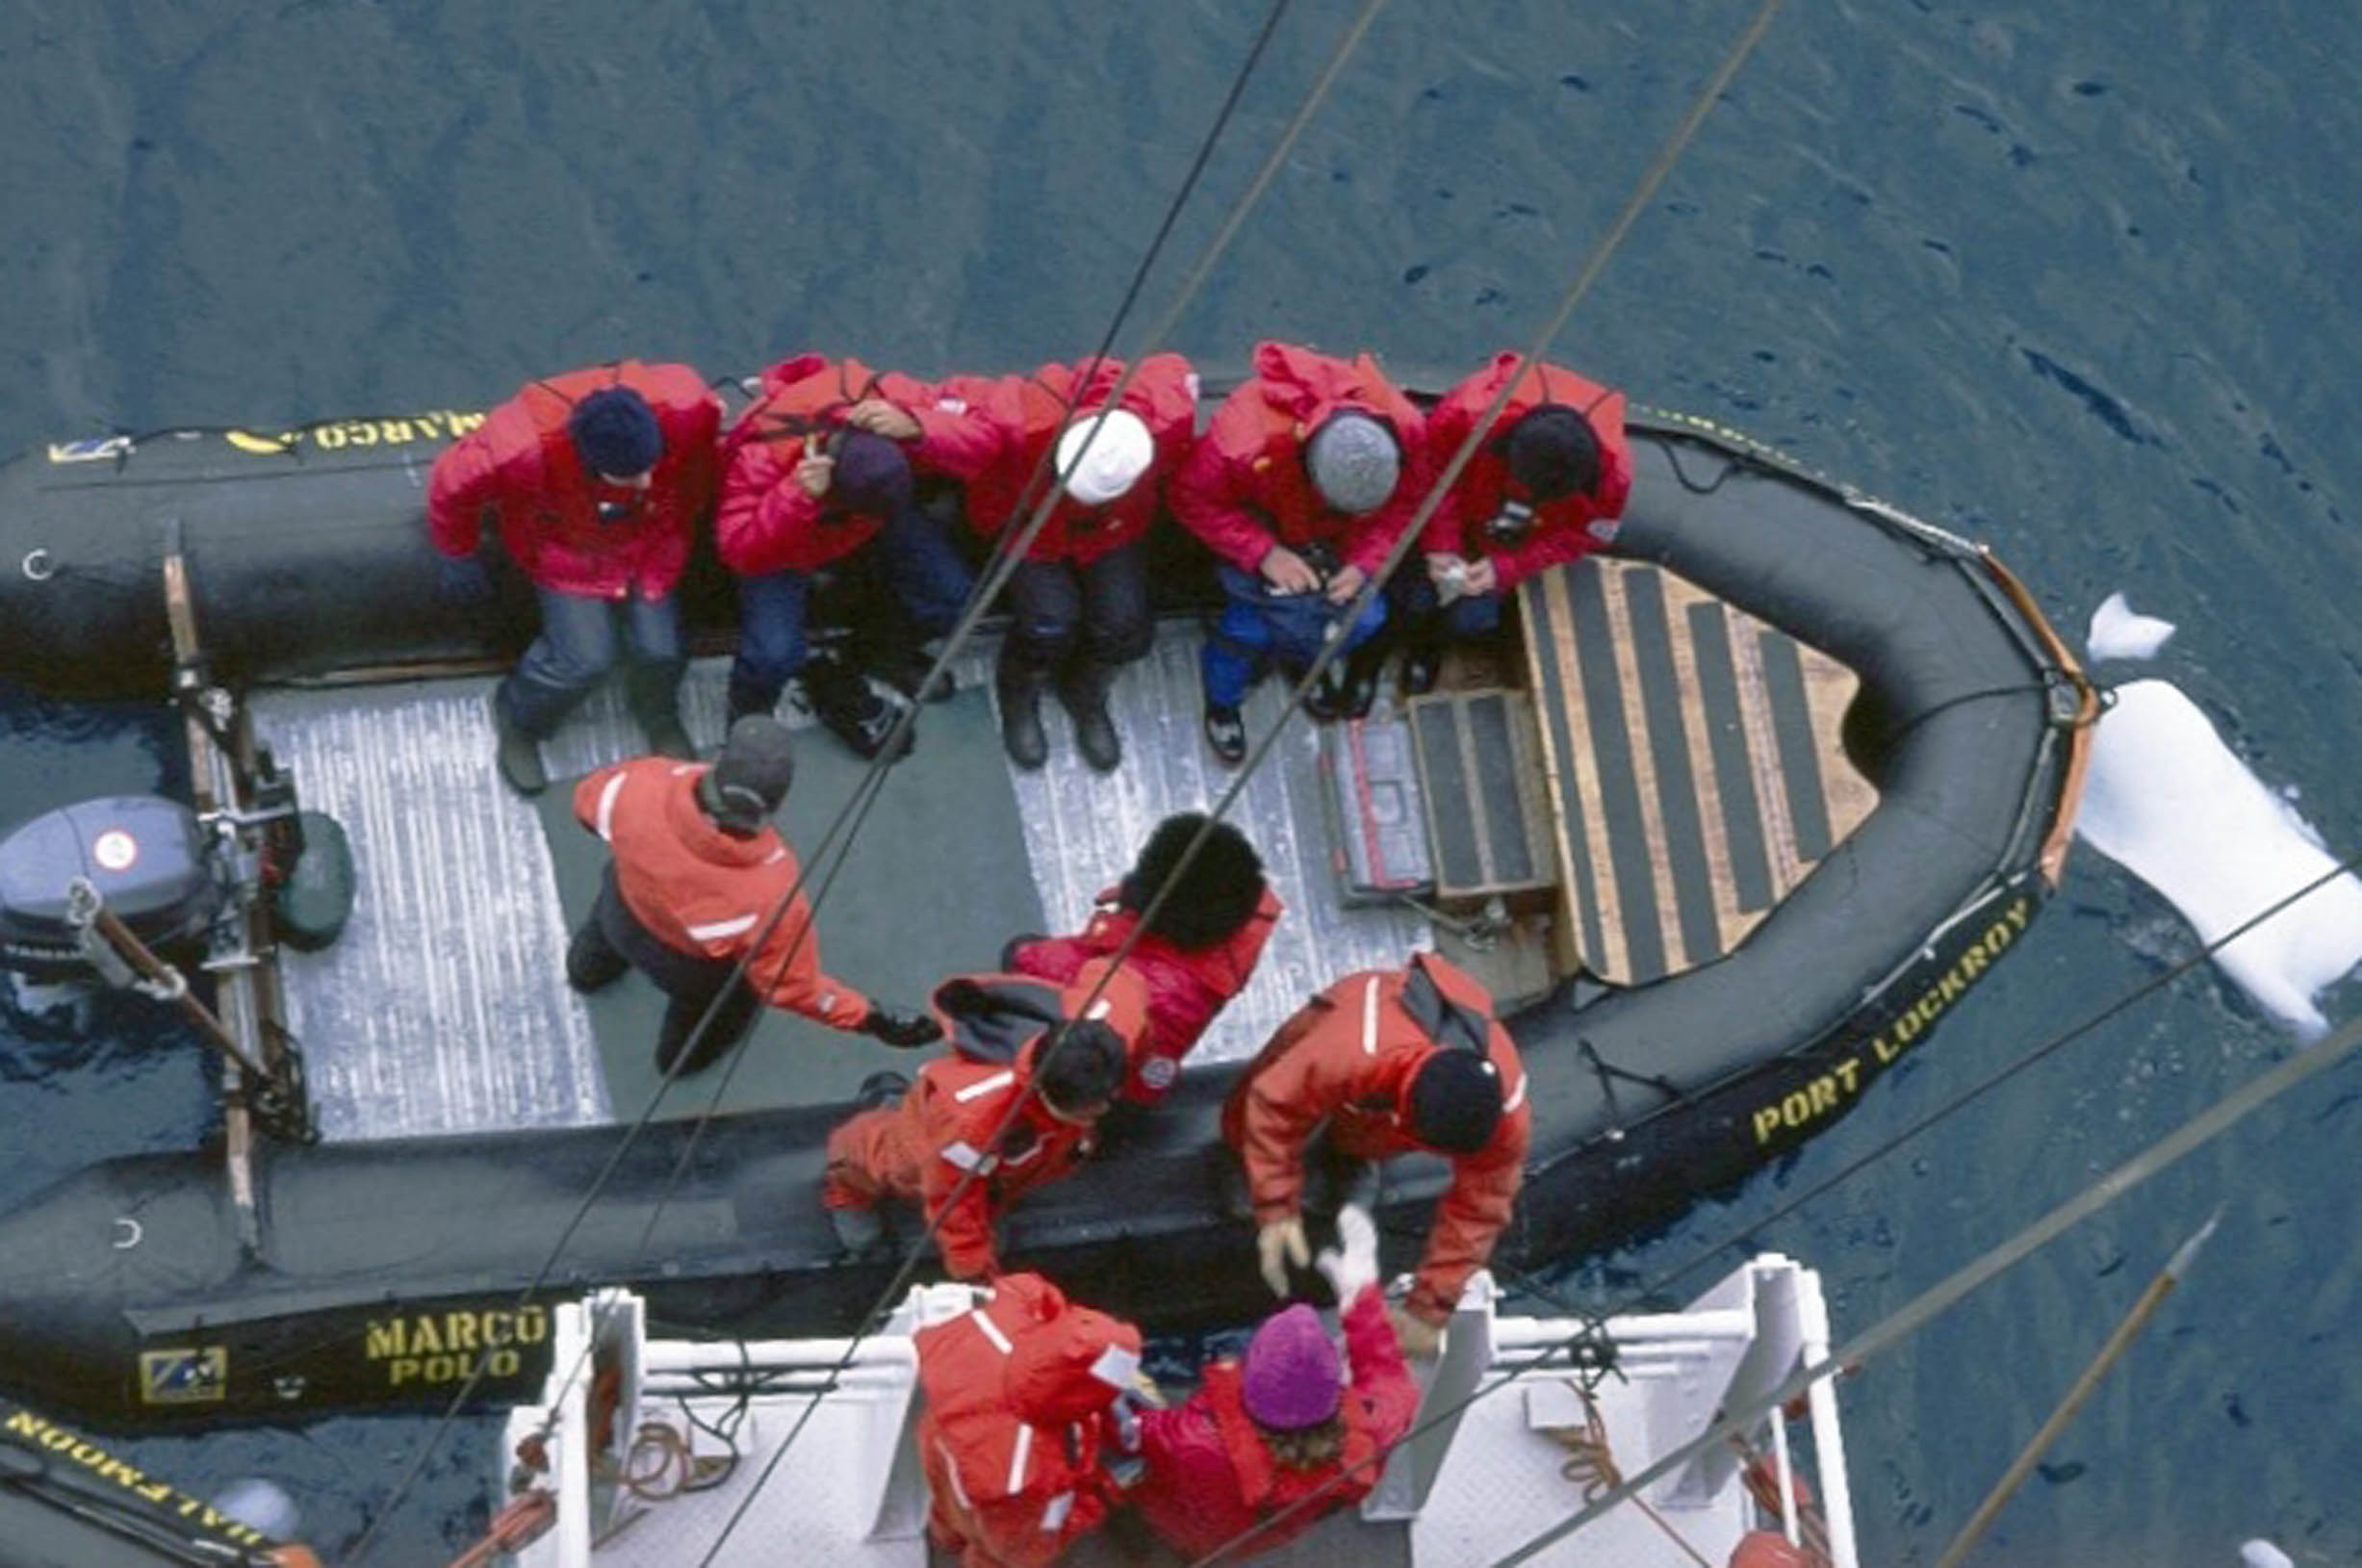 People in red anoraks on a small boat, seen from above